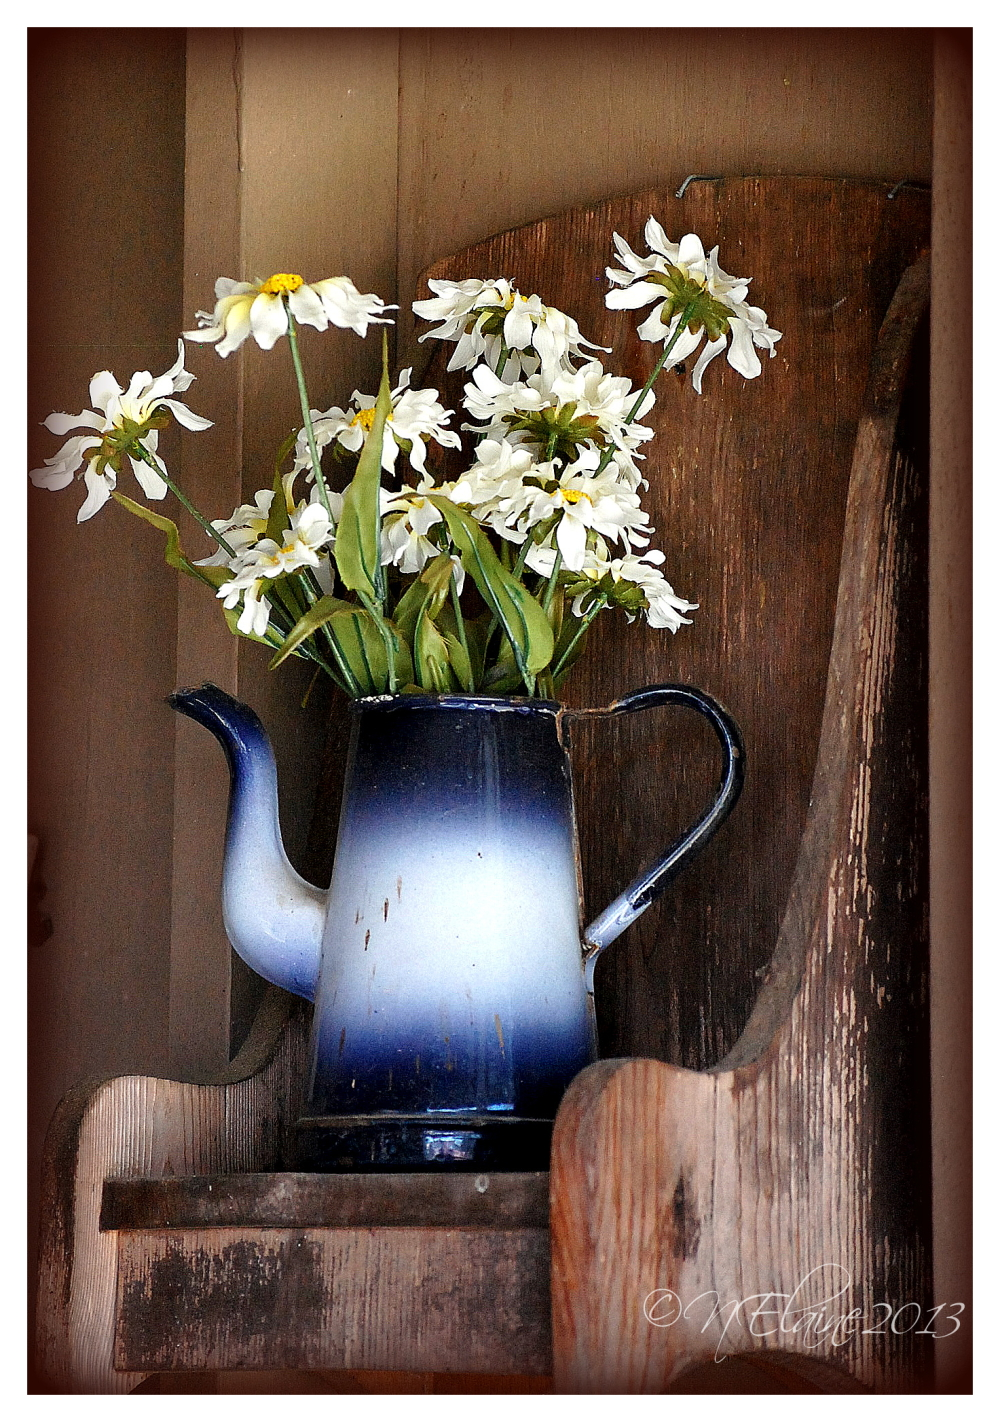 flowers in a pot on a shelf